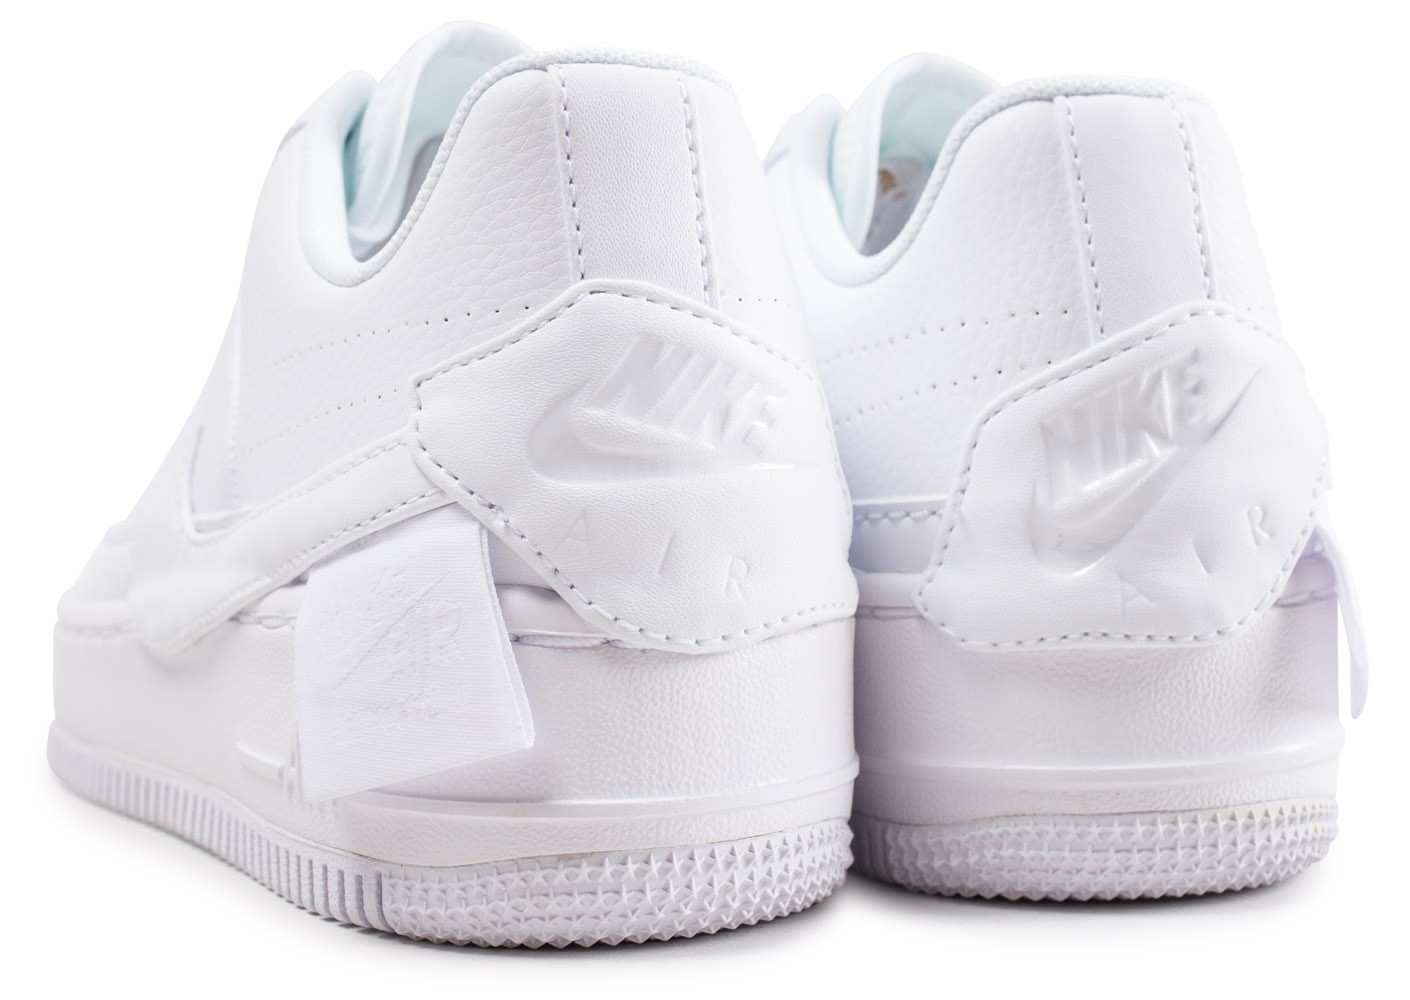 detailed look c23e6 6a506 ... Chaussures Nike Air Force 1 Jester XX blanche femme vue dessous ...